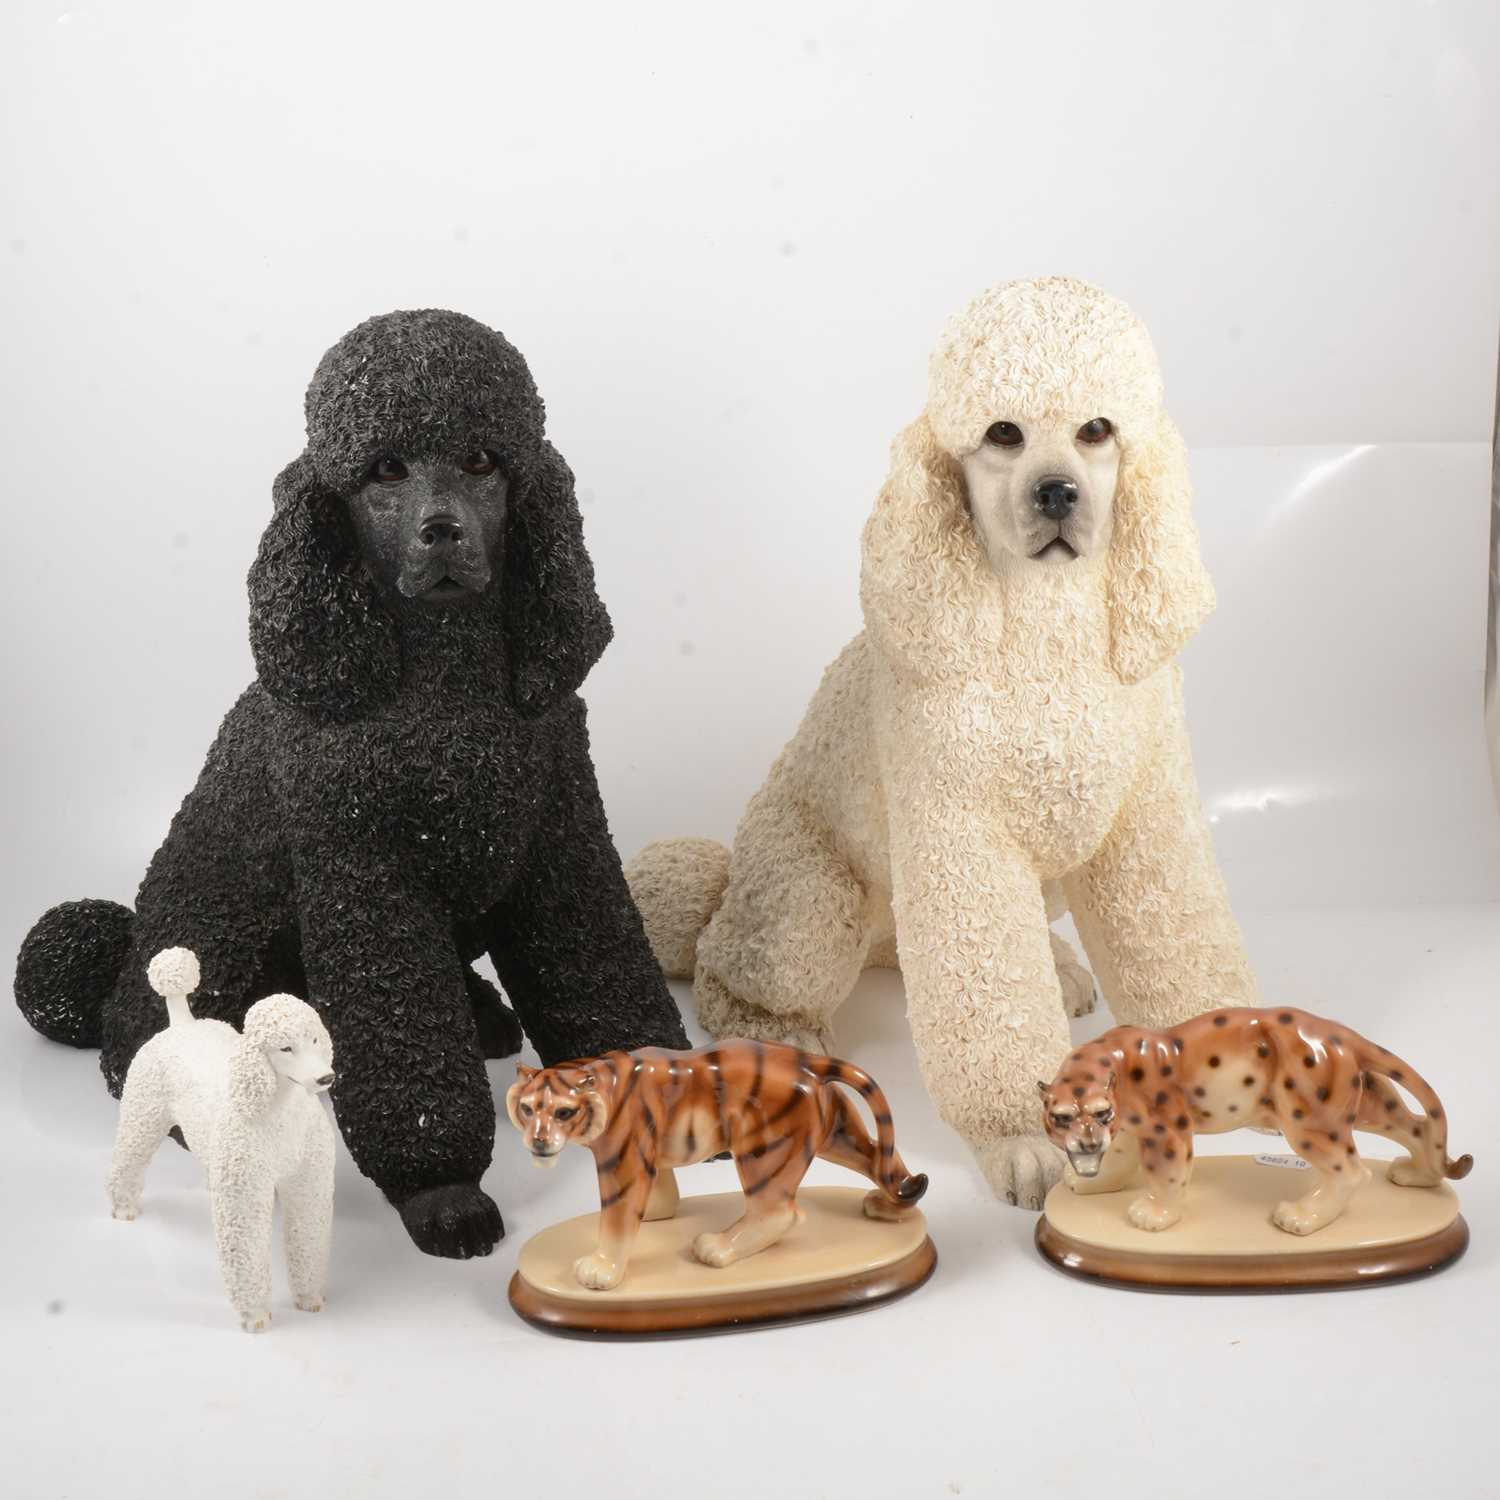 Lot 34 - Two large resin poodles, other poodle models and ornaments